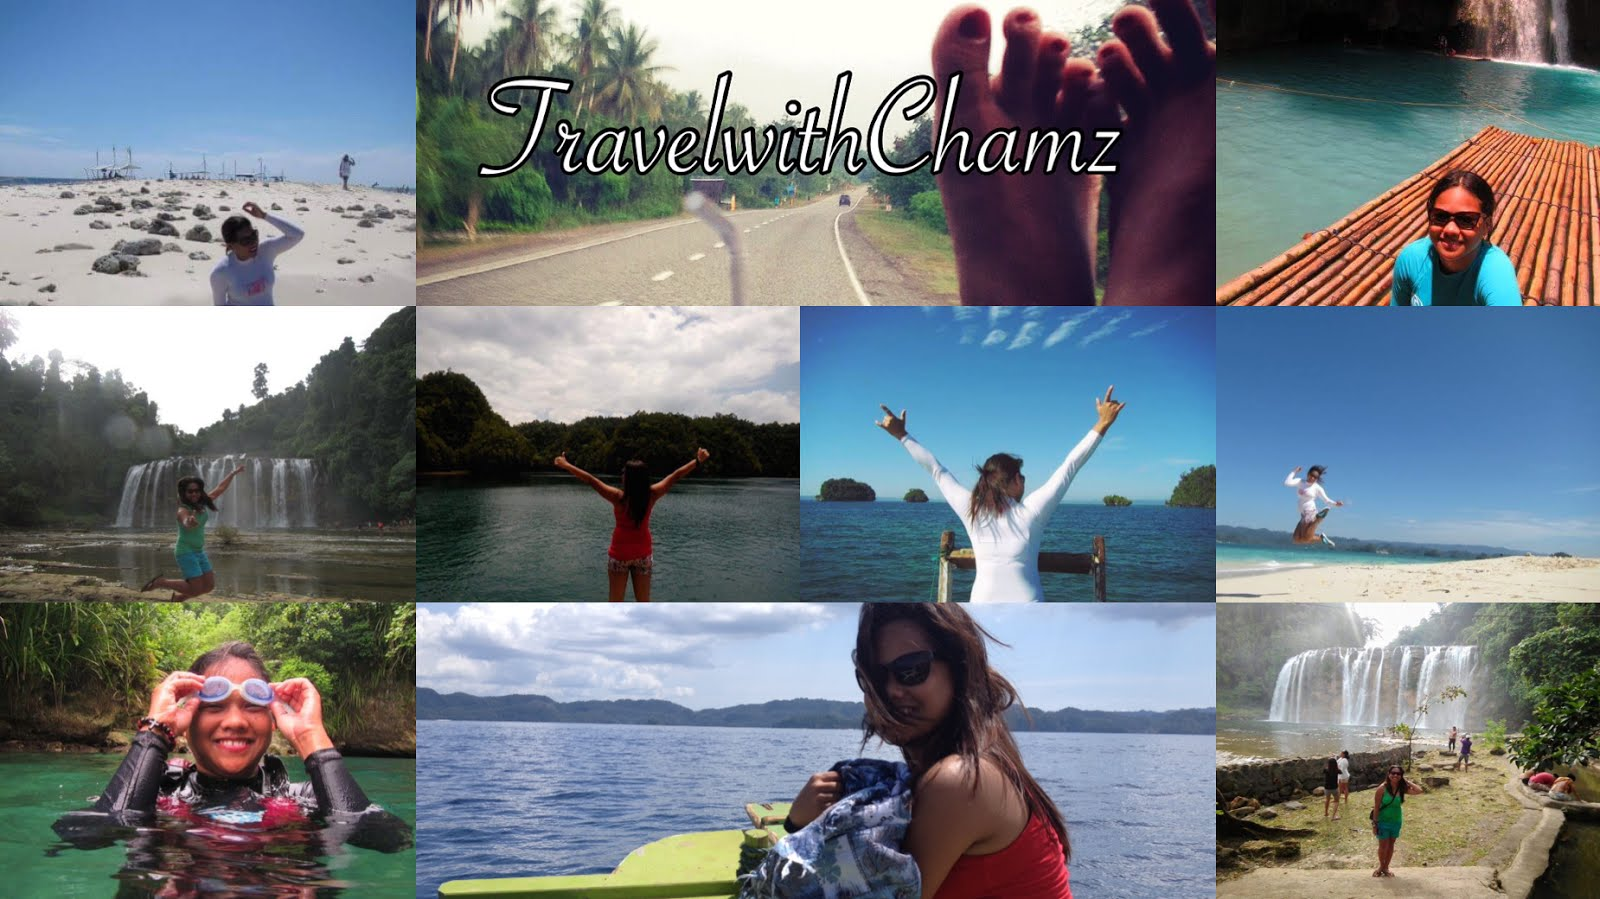 Travel with Chamz